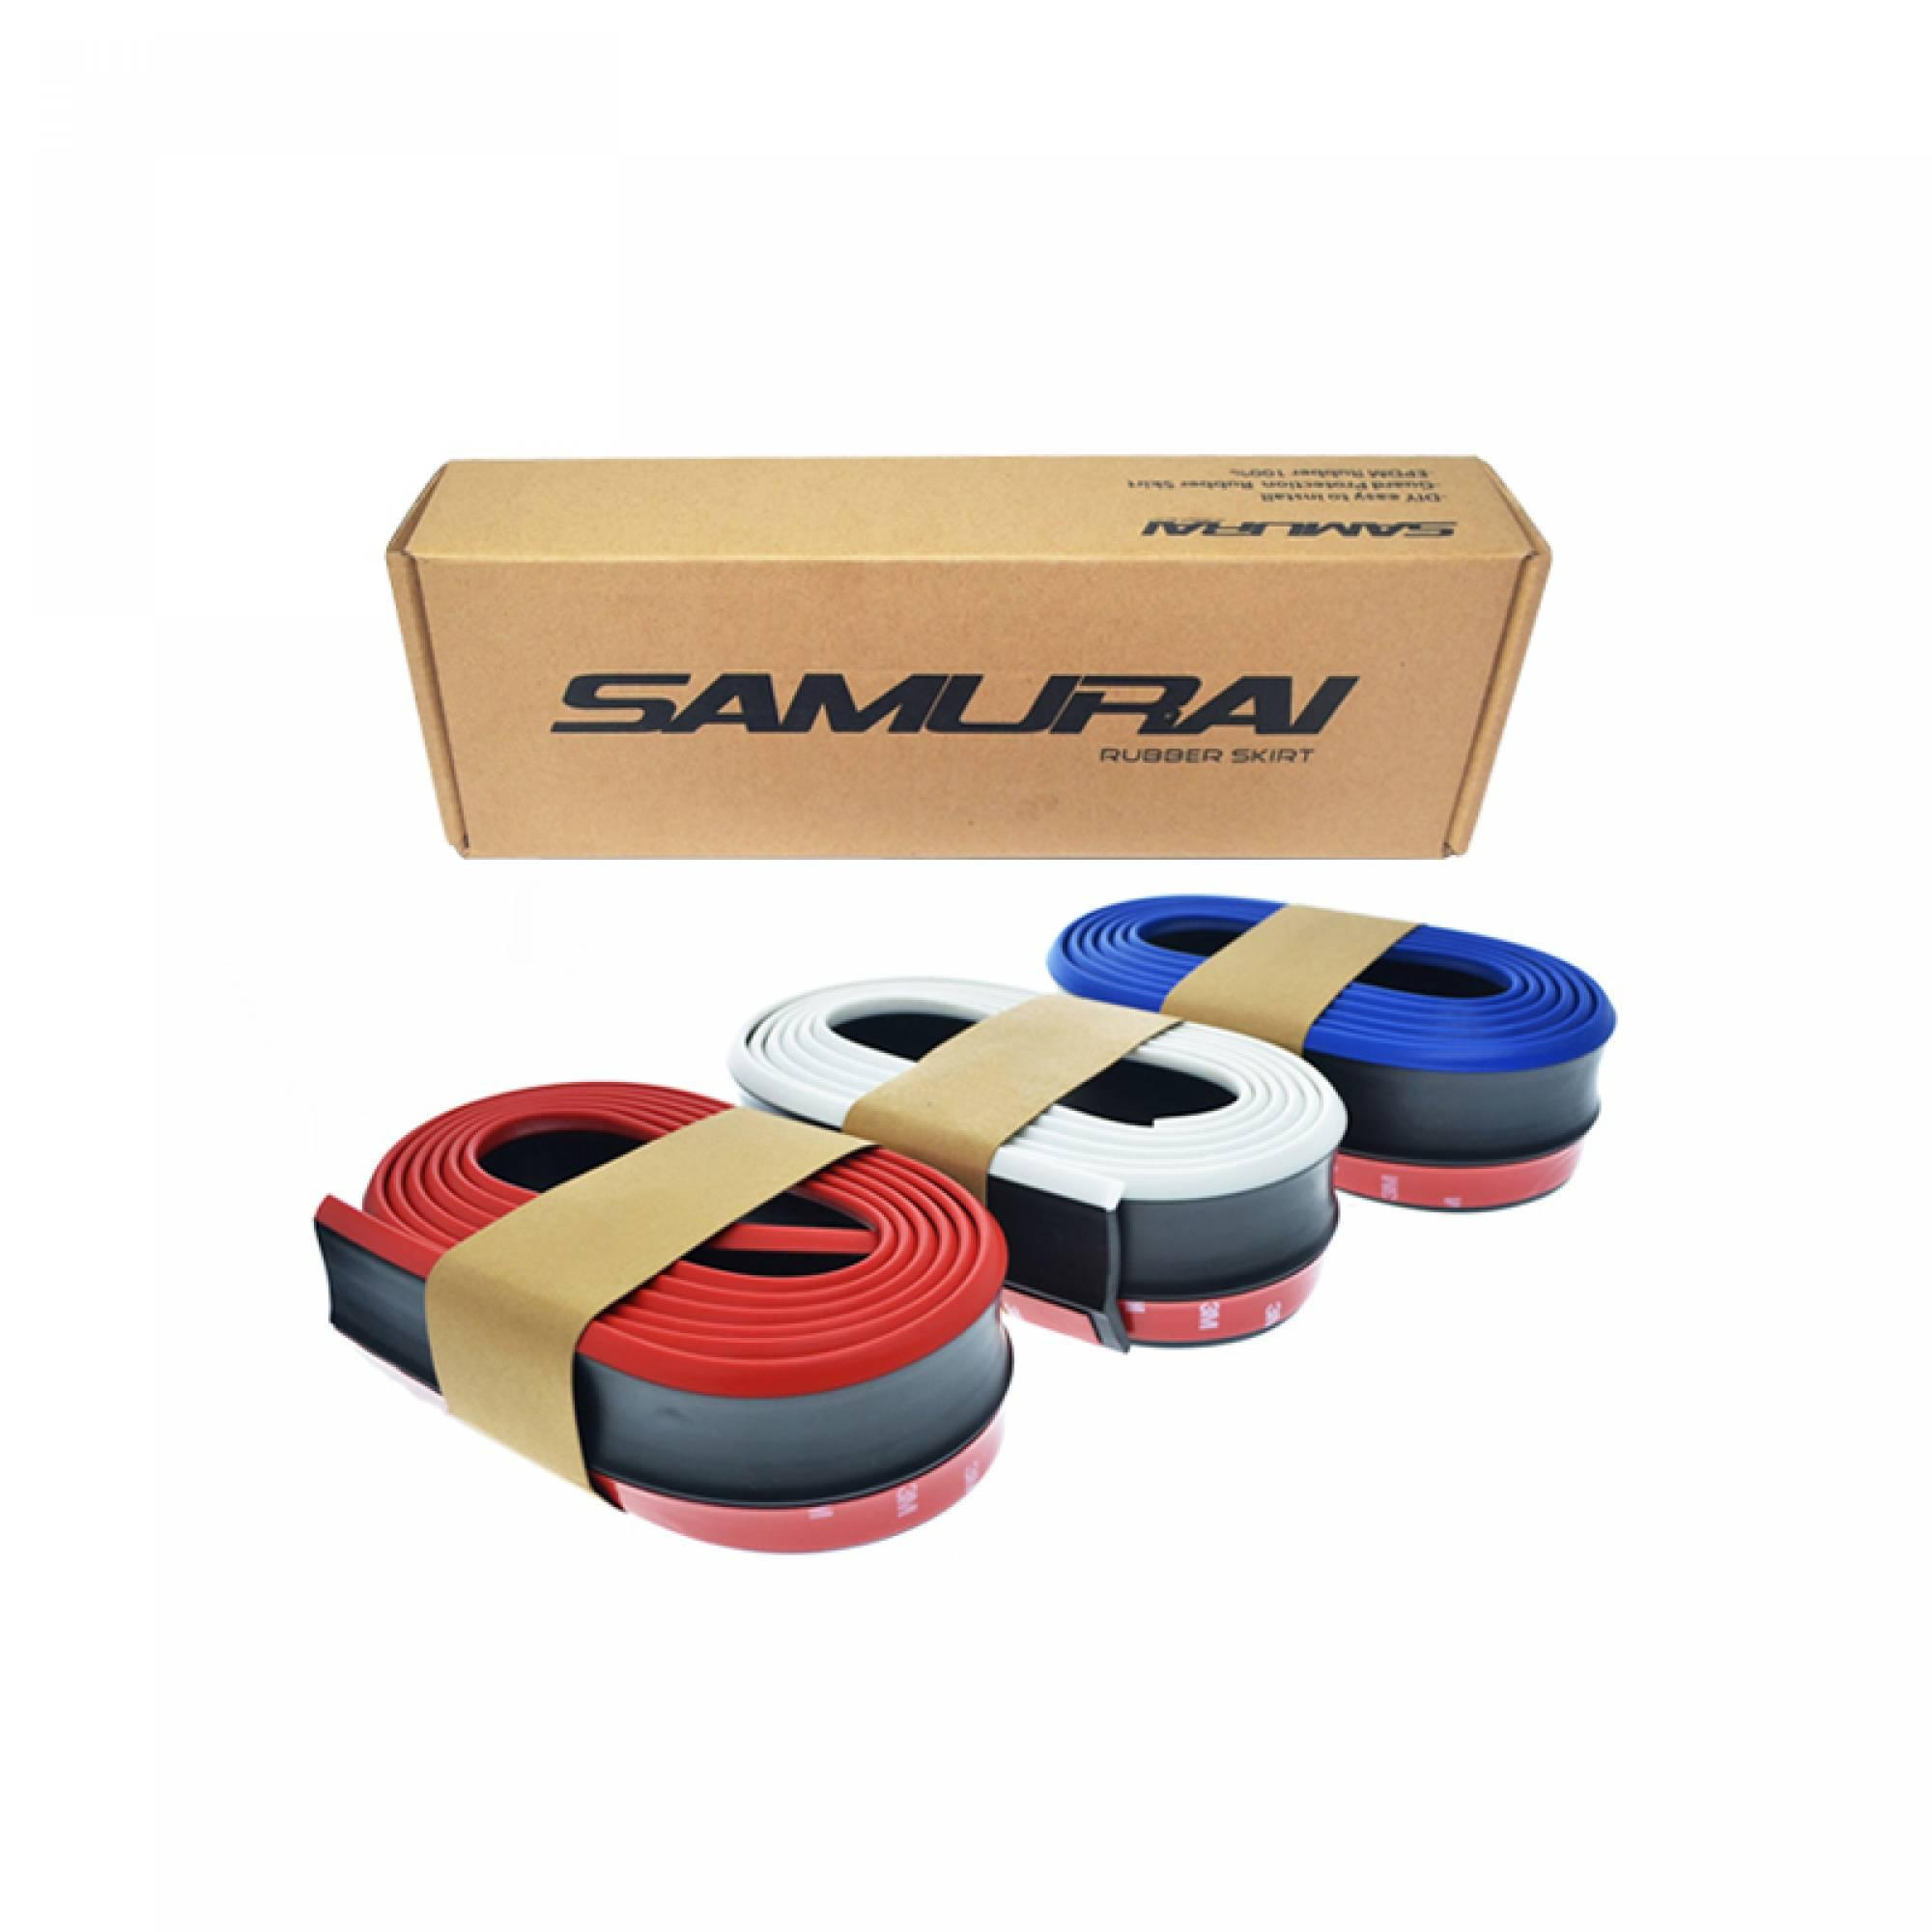 Samurai Rubber Skirt Two Tone Brothers Factory Outlet M Sdn Kenwood Kacps647 Pro Series Wiring Kit Post Laju